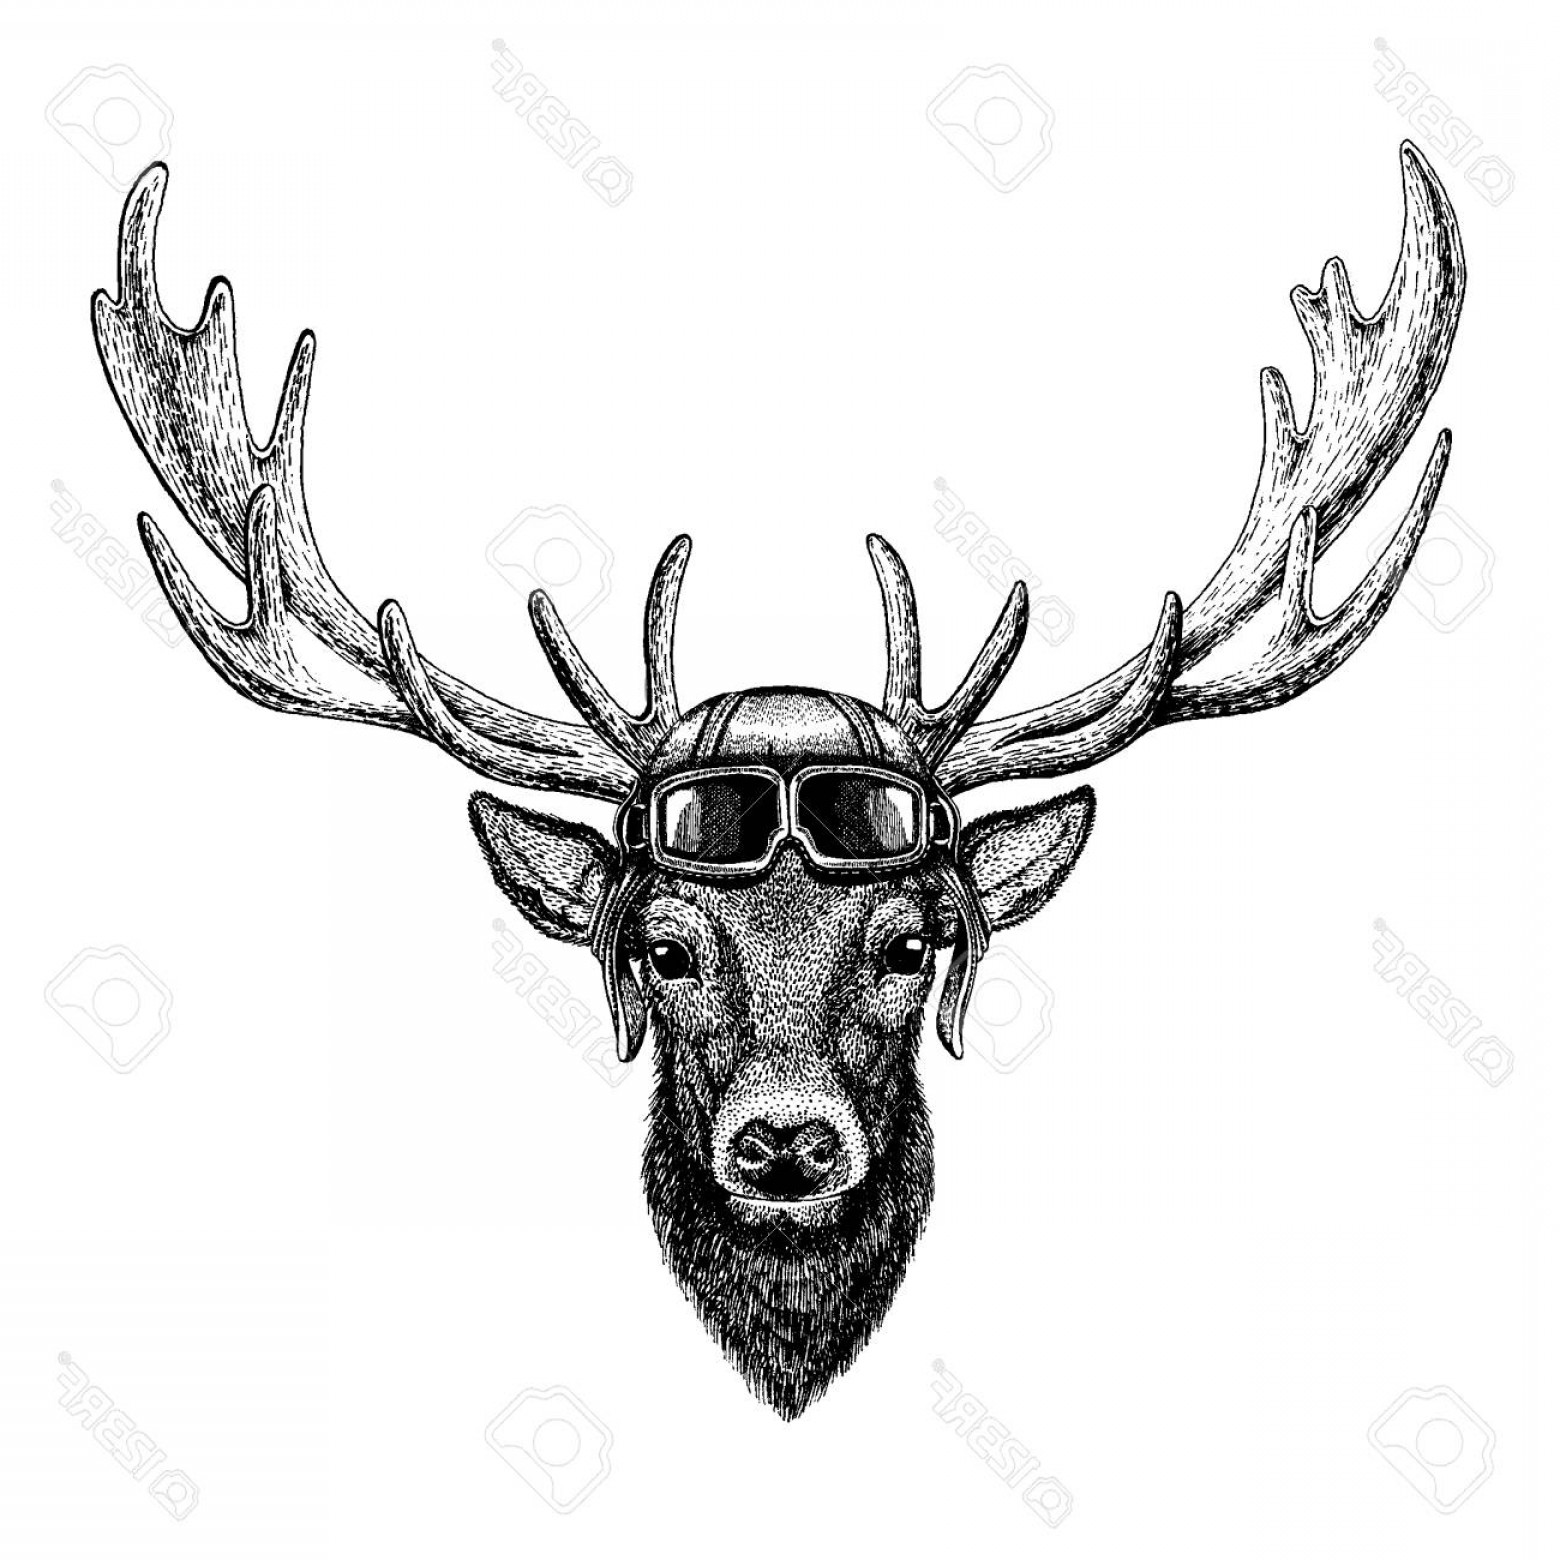 Aviator Vector Ink Drawings: Photostock Vector Animal Wearing Aviator Helmet With Glasses Vector Picture Deer Hand Drawn Illustration For Tattoo Em